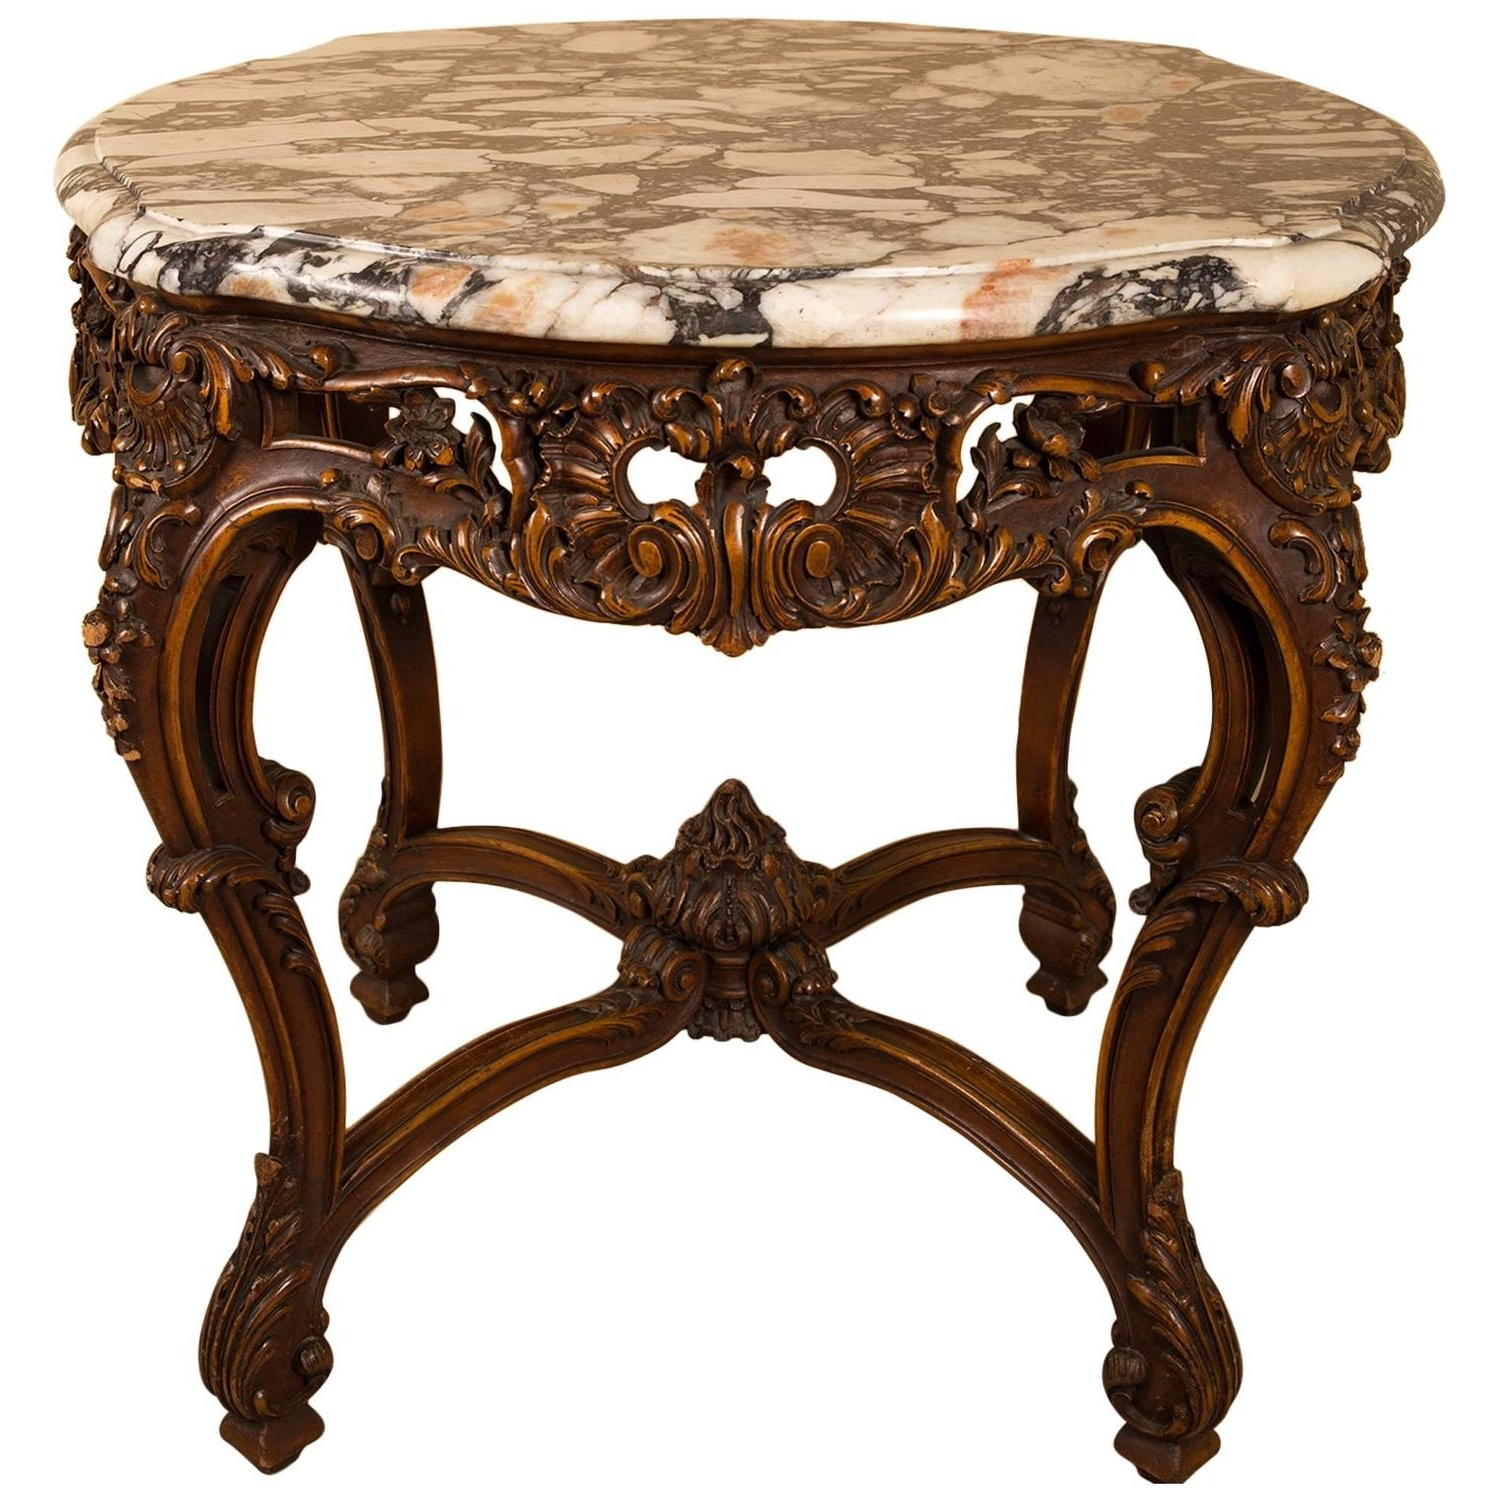 Round Carved Wood Coffee Table Carved Wood Round Coffee Table Pertaining To Newest Round Carved Wood Coffee Tables (View 7 of 20)